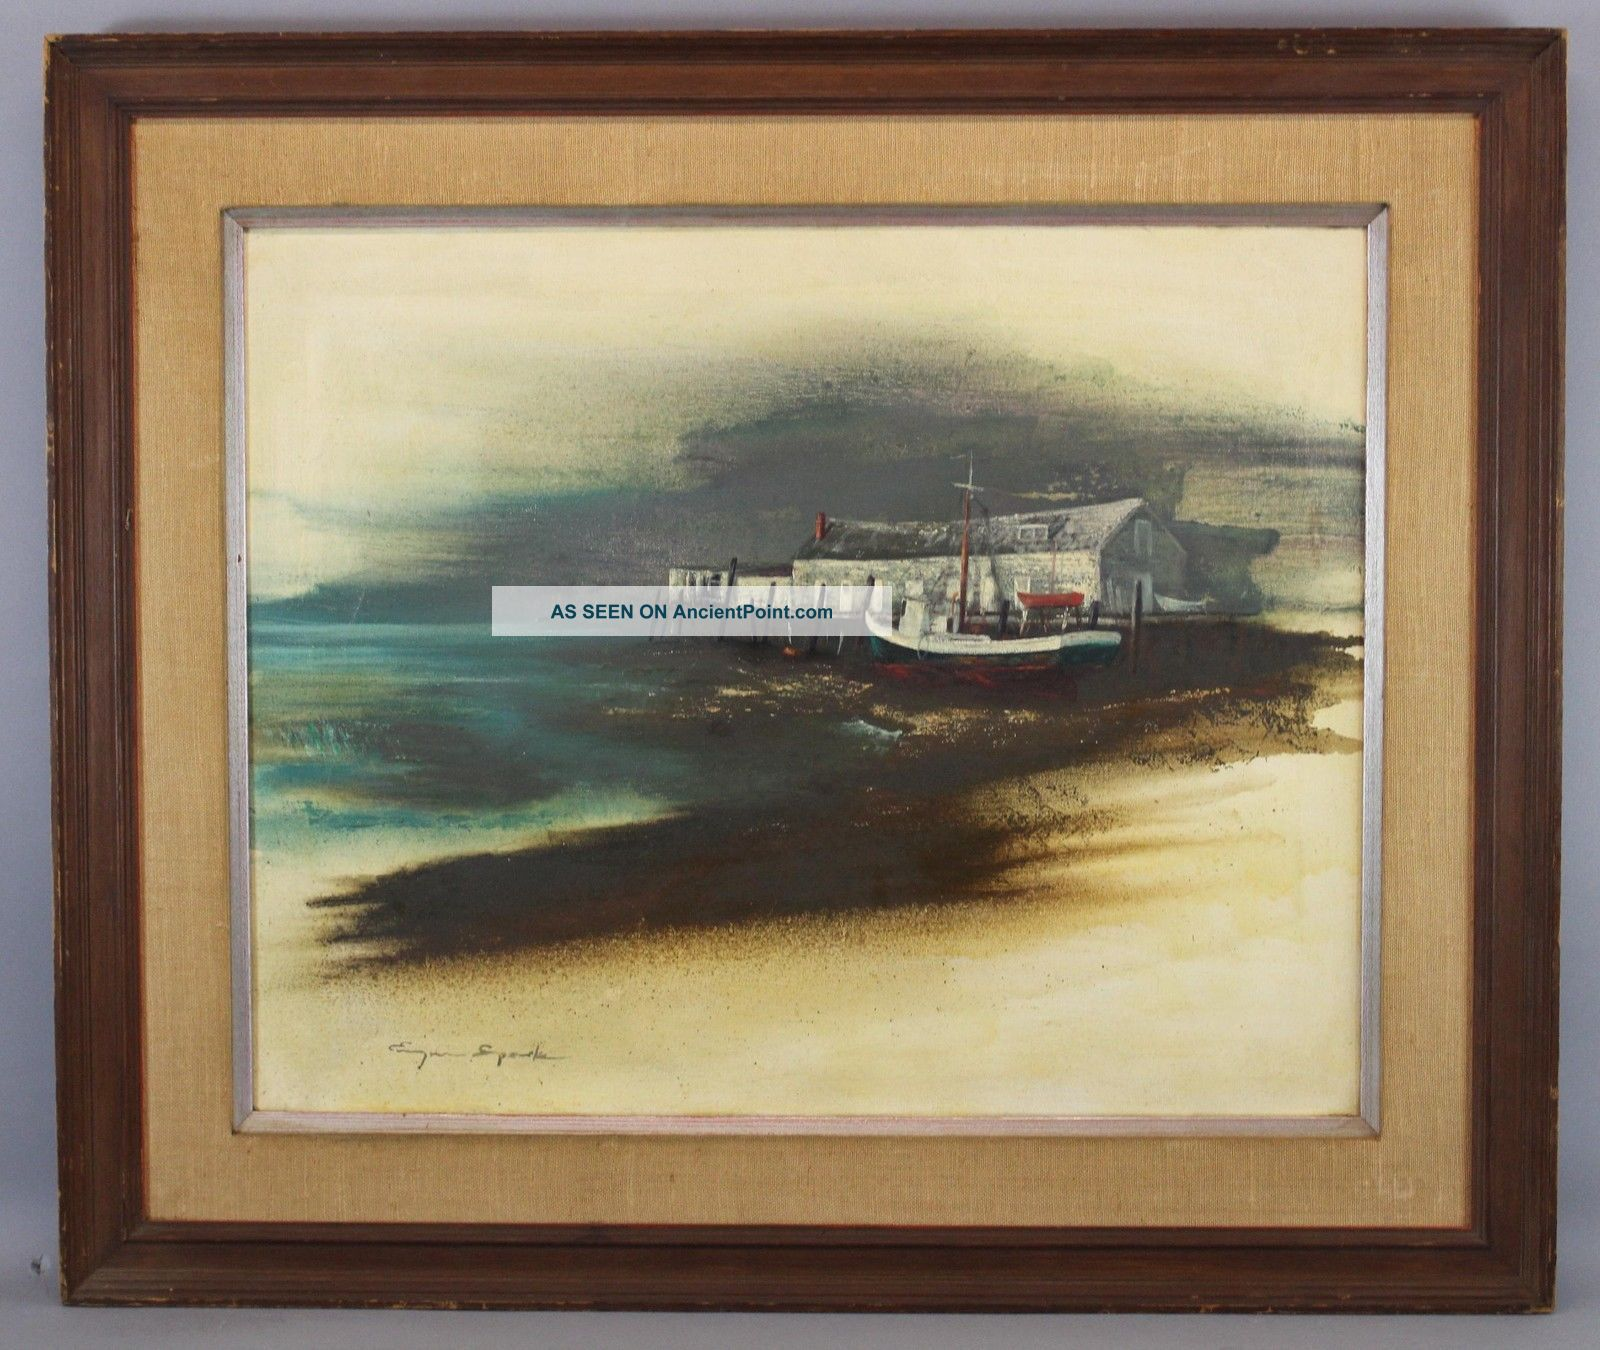 1966 Vintage Eugene Sparks Provincetown Ma Fishing Dock & Boat Oil Painting Nr Other Maritime Antiques photo